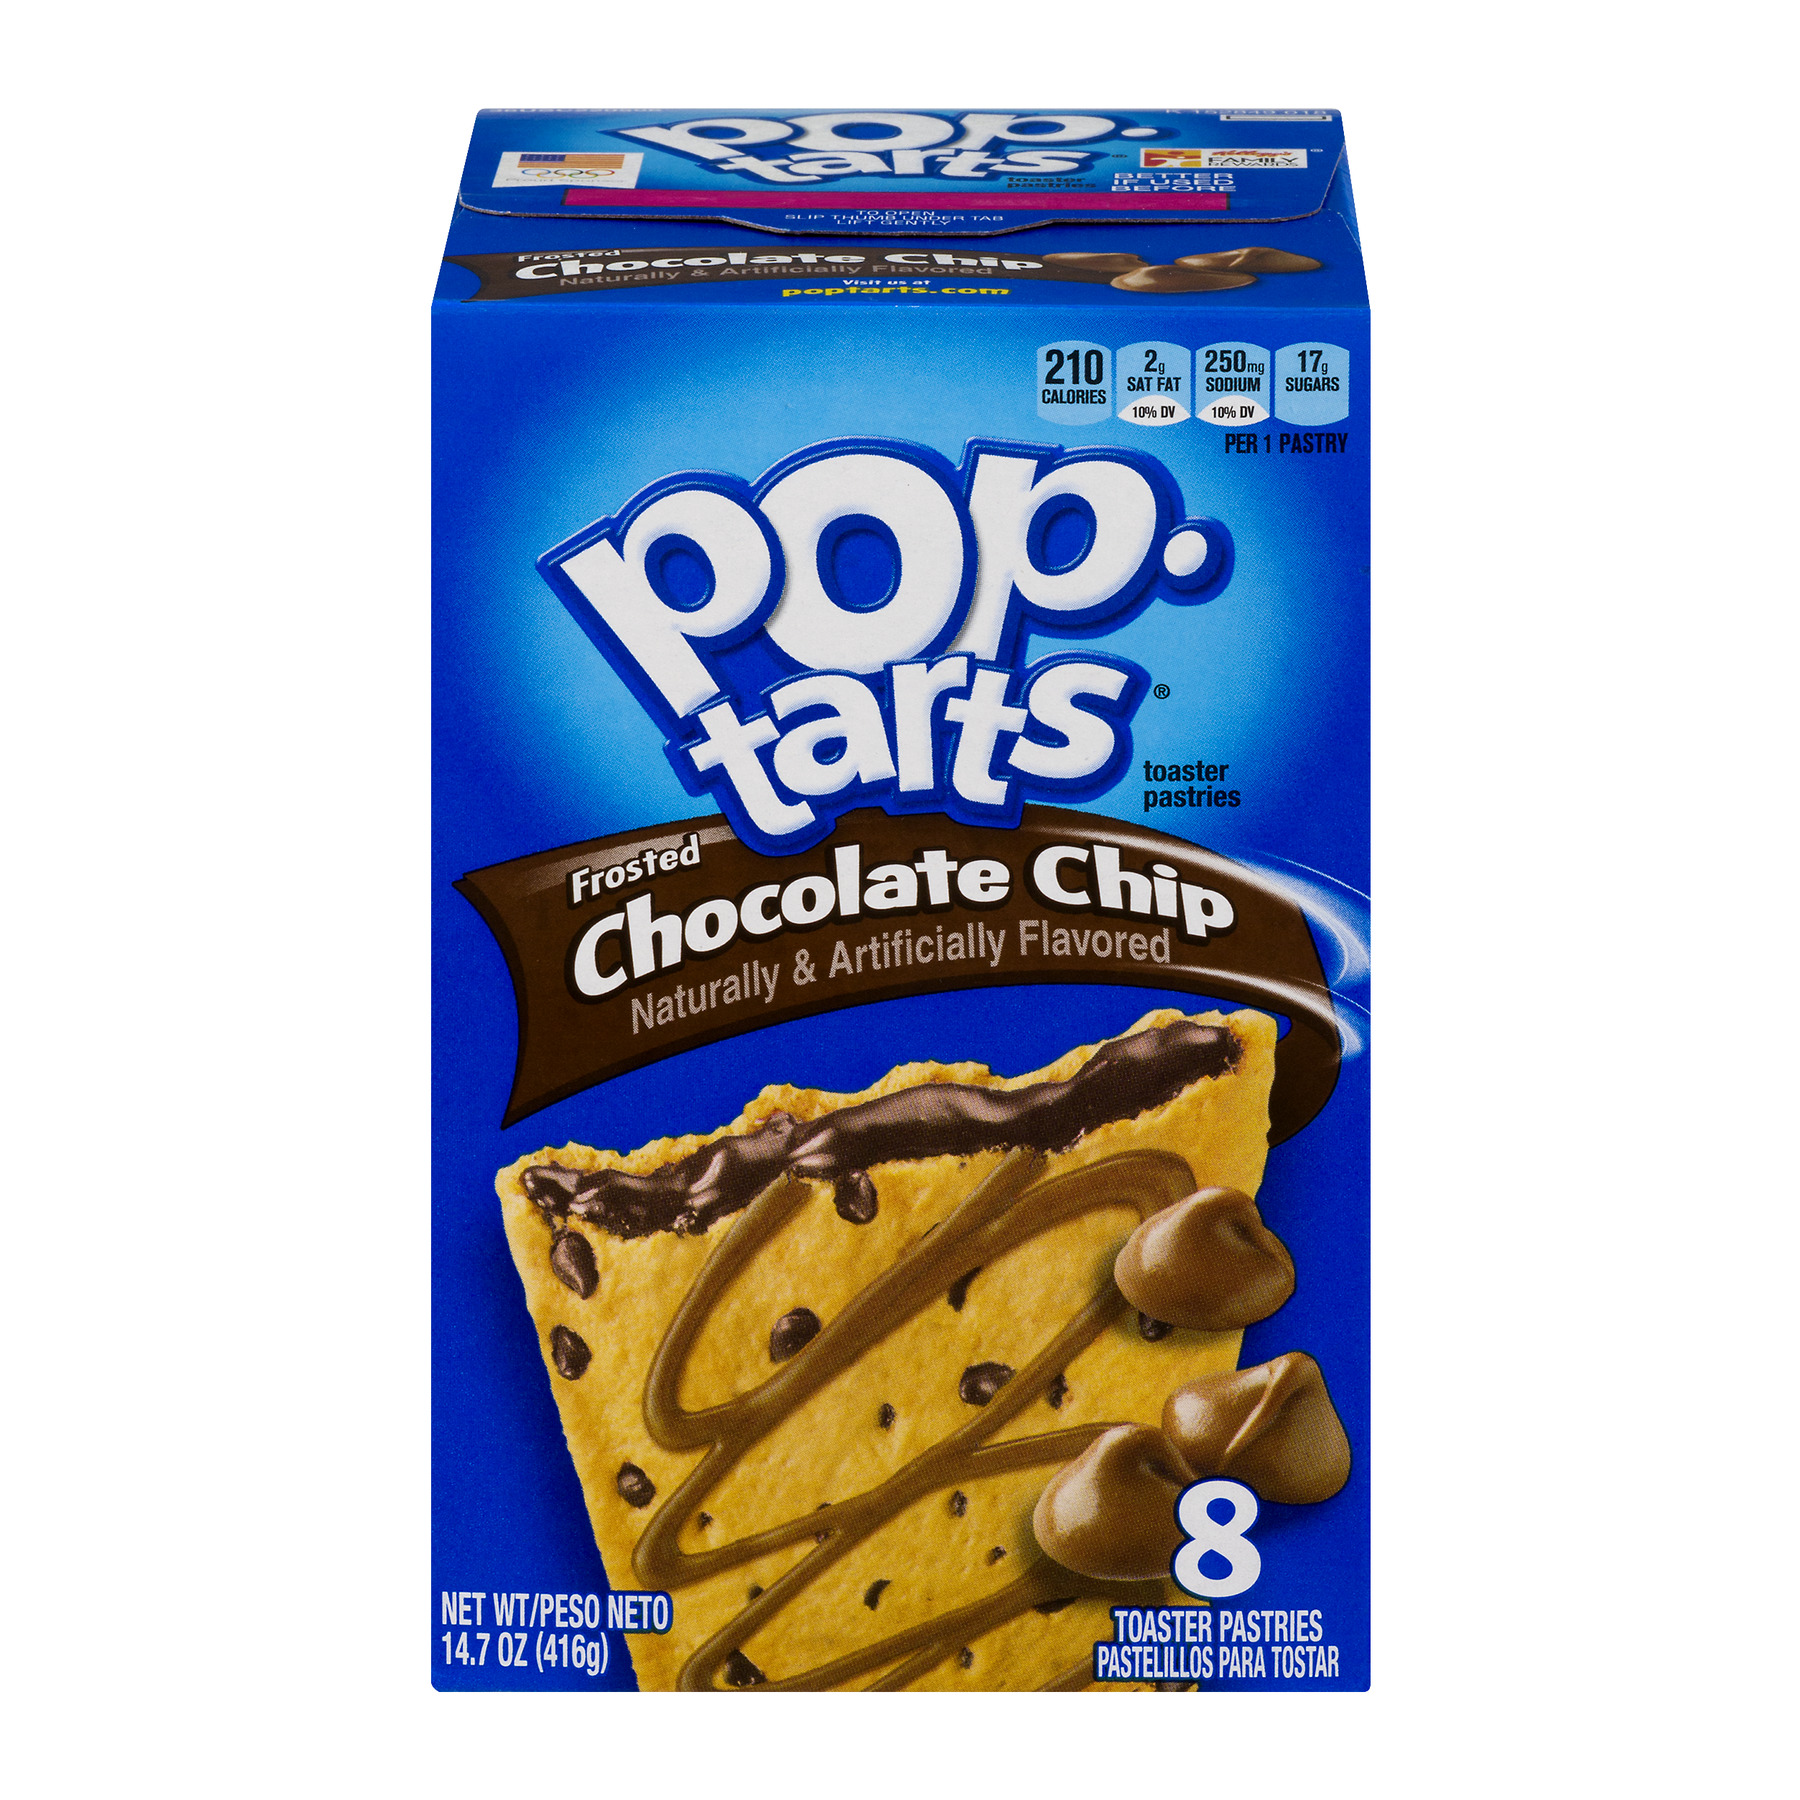 Kellogg's Pop-Tarts Frosted Chocolate Chip Toaster Pastries, 8ct 14.7 oz